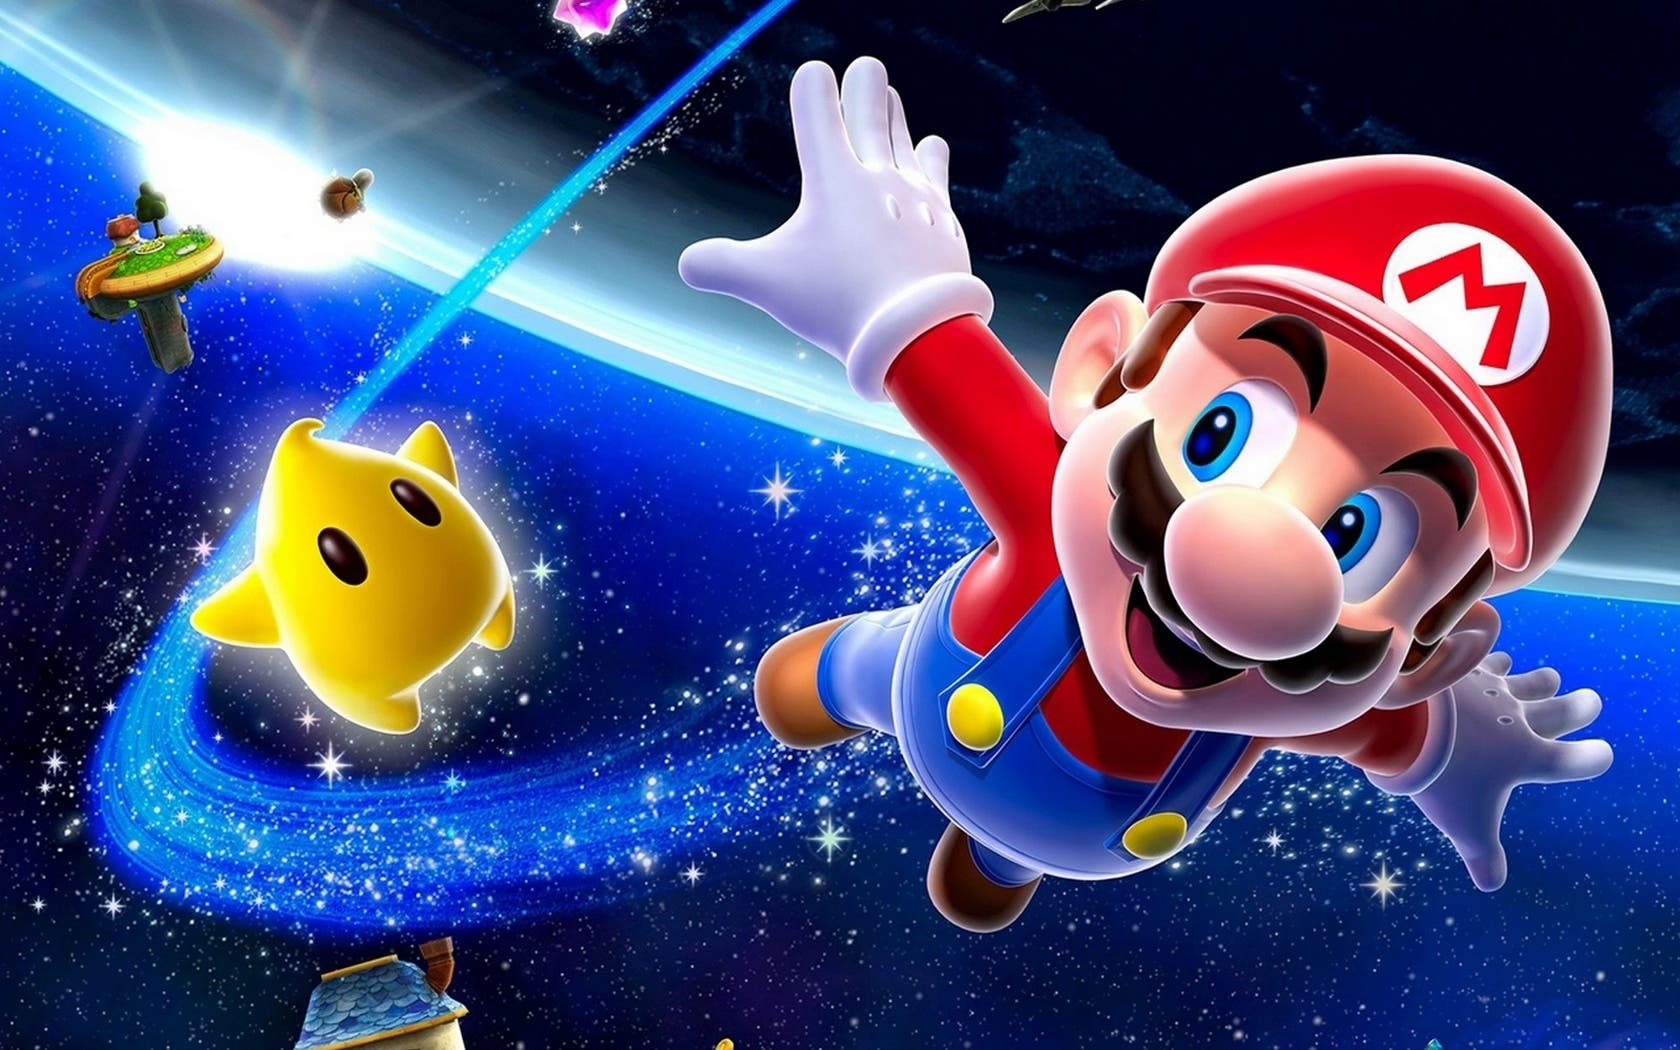 Más rumores sobre 'Twilight Princess HD', 'Super Mario Galaxy' en Wii U y más